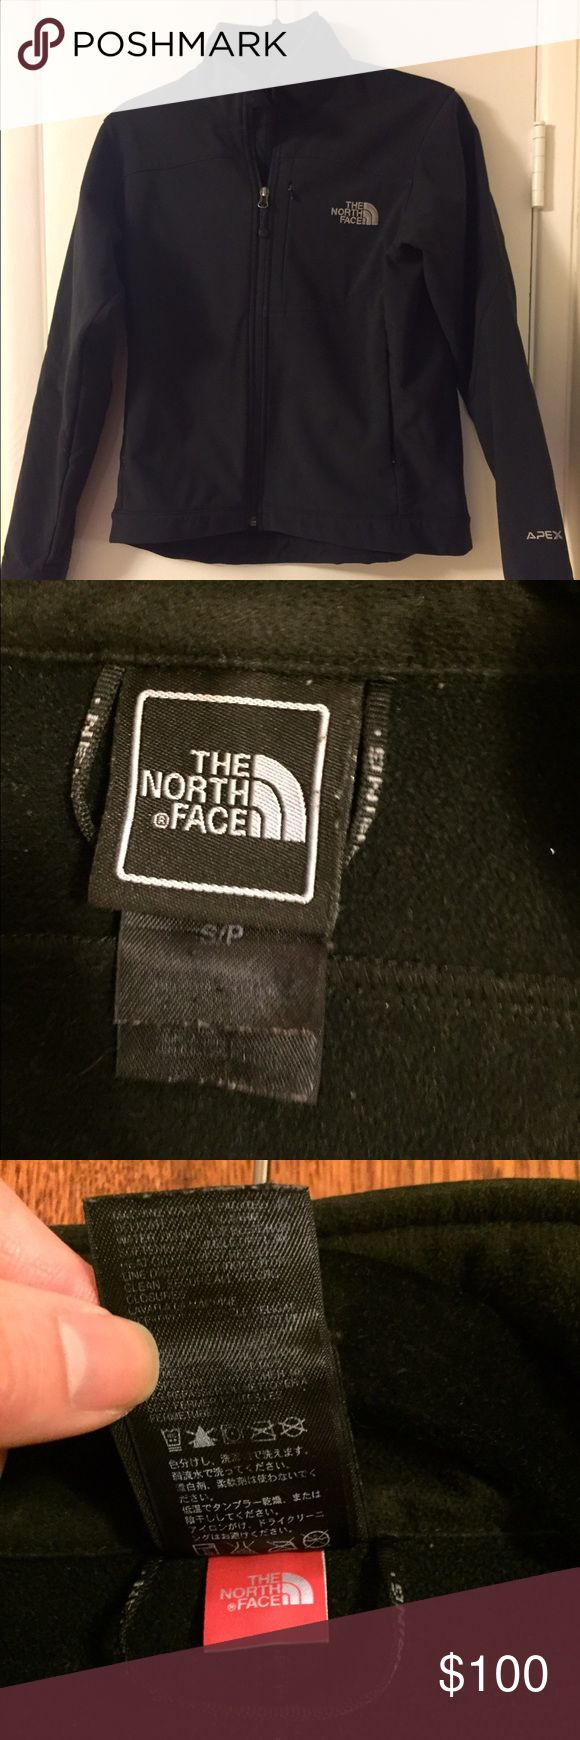 S North Face Water Resistant Jacket The outside its water resistant and it's a good jacket for both spring and fall. North Face Jackets & Coats Utility Jackets